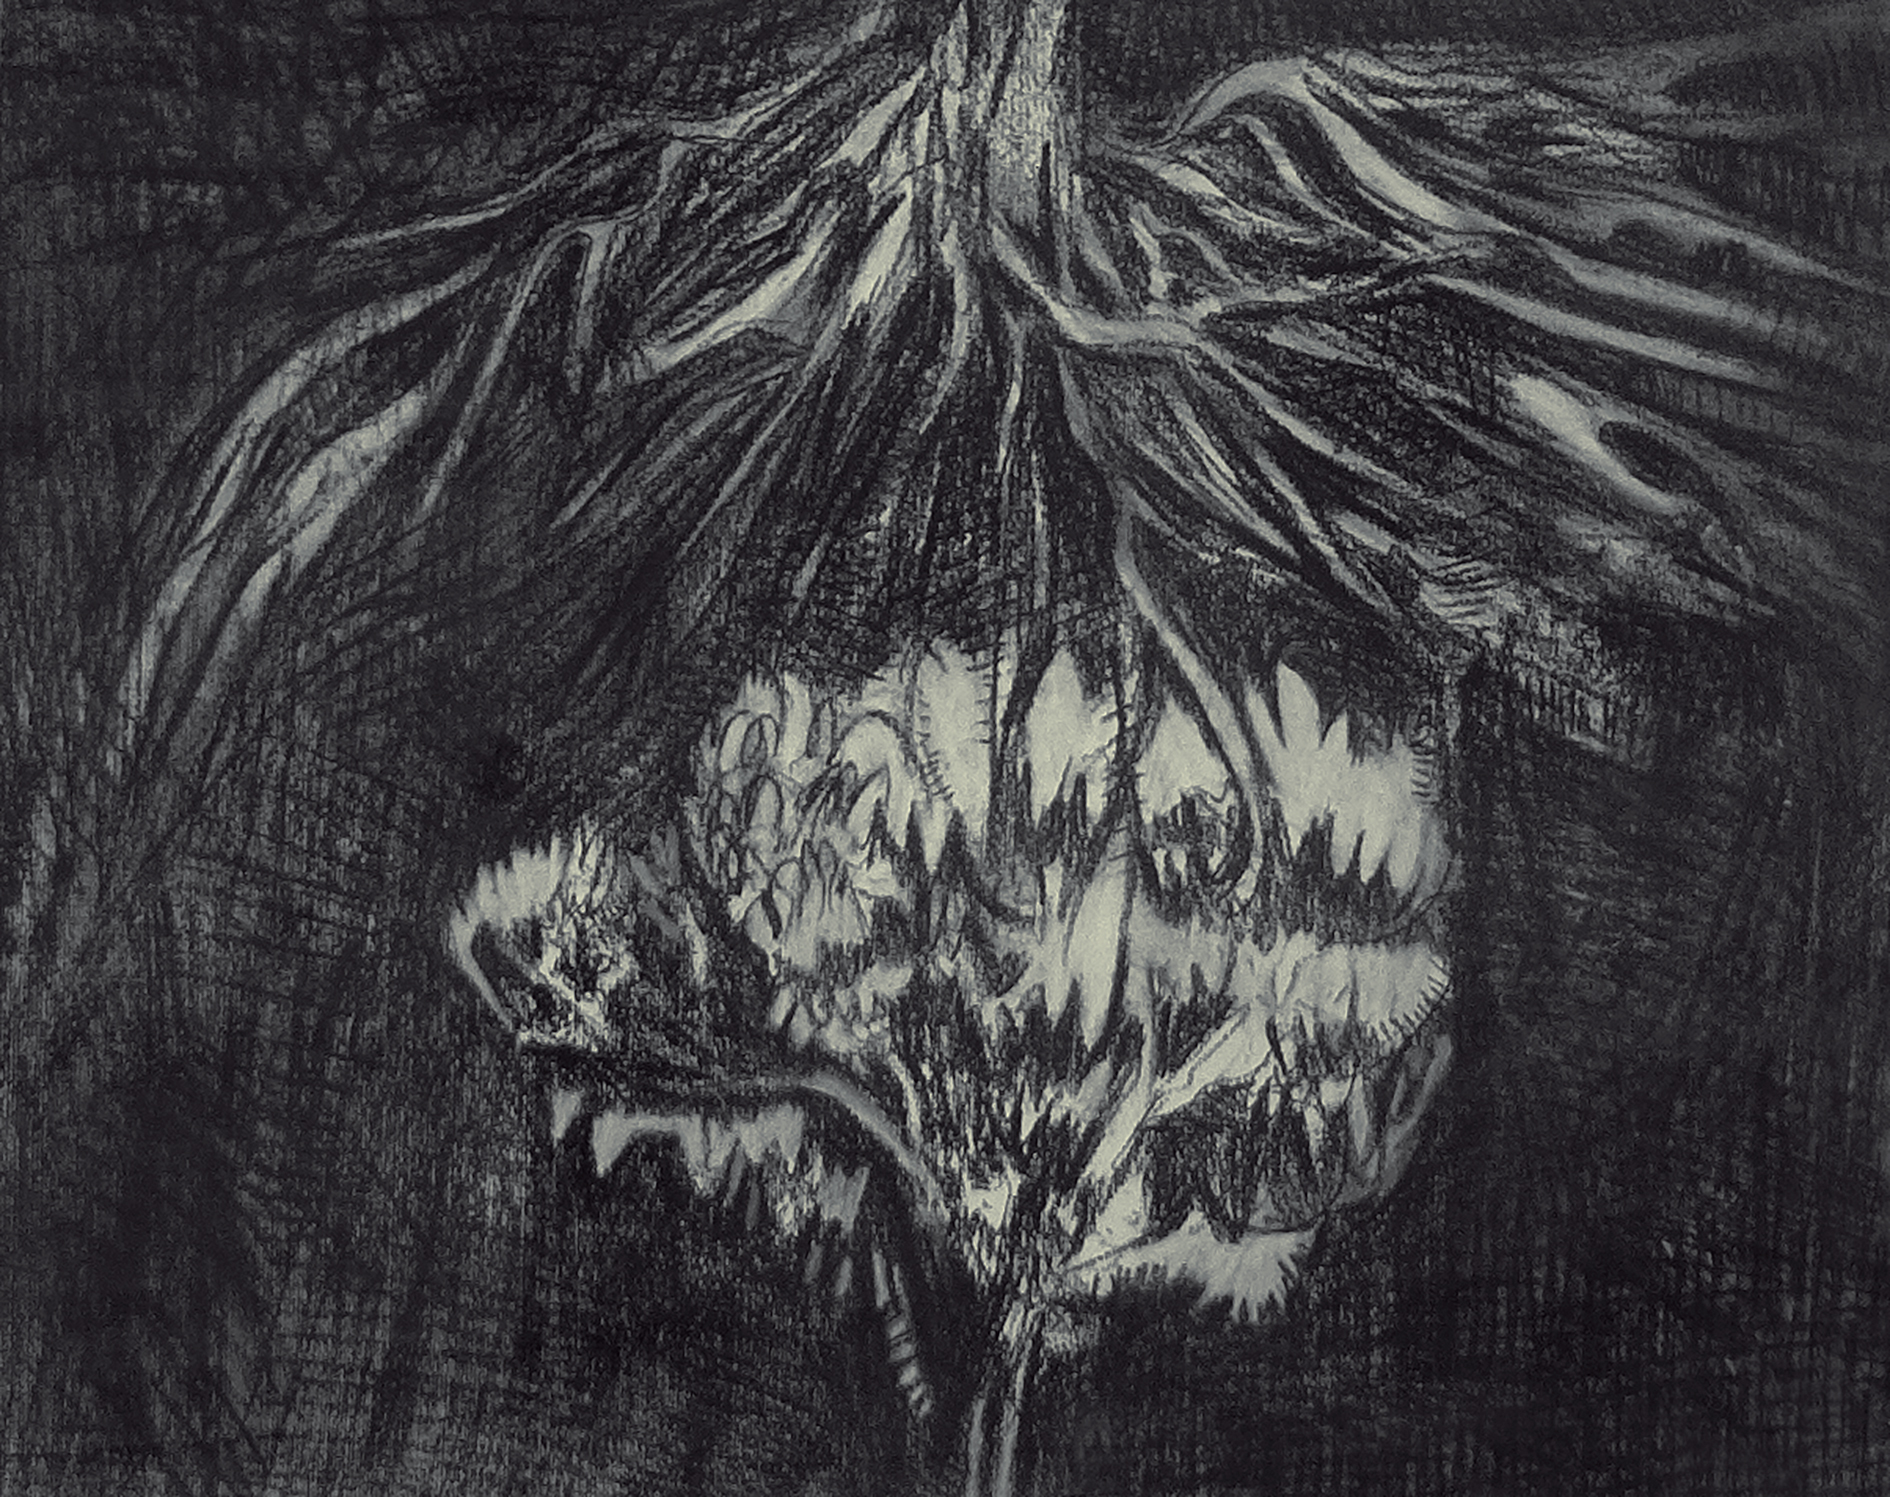 Uprooted 2 - Charcoal and graphite on paper